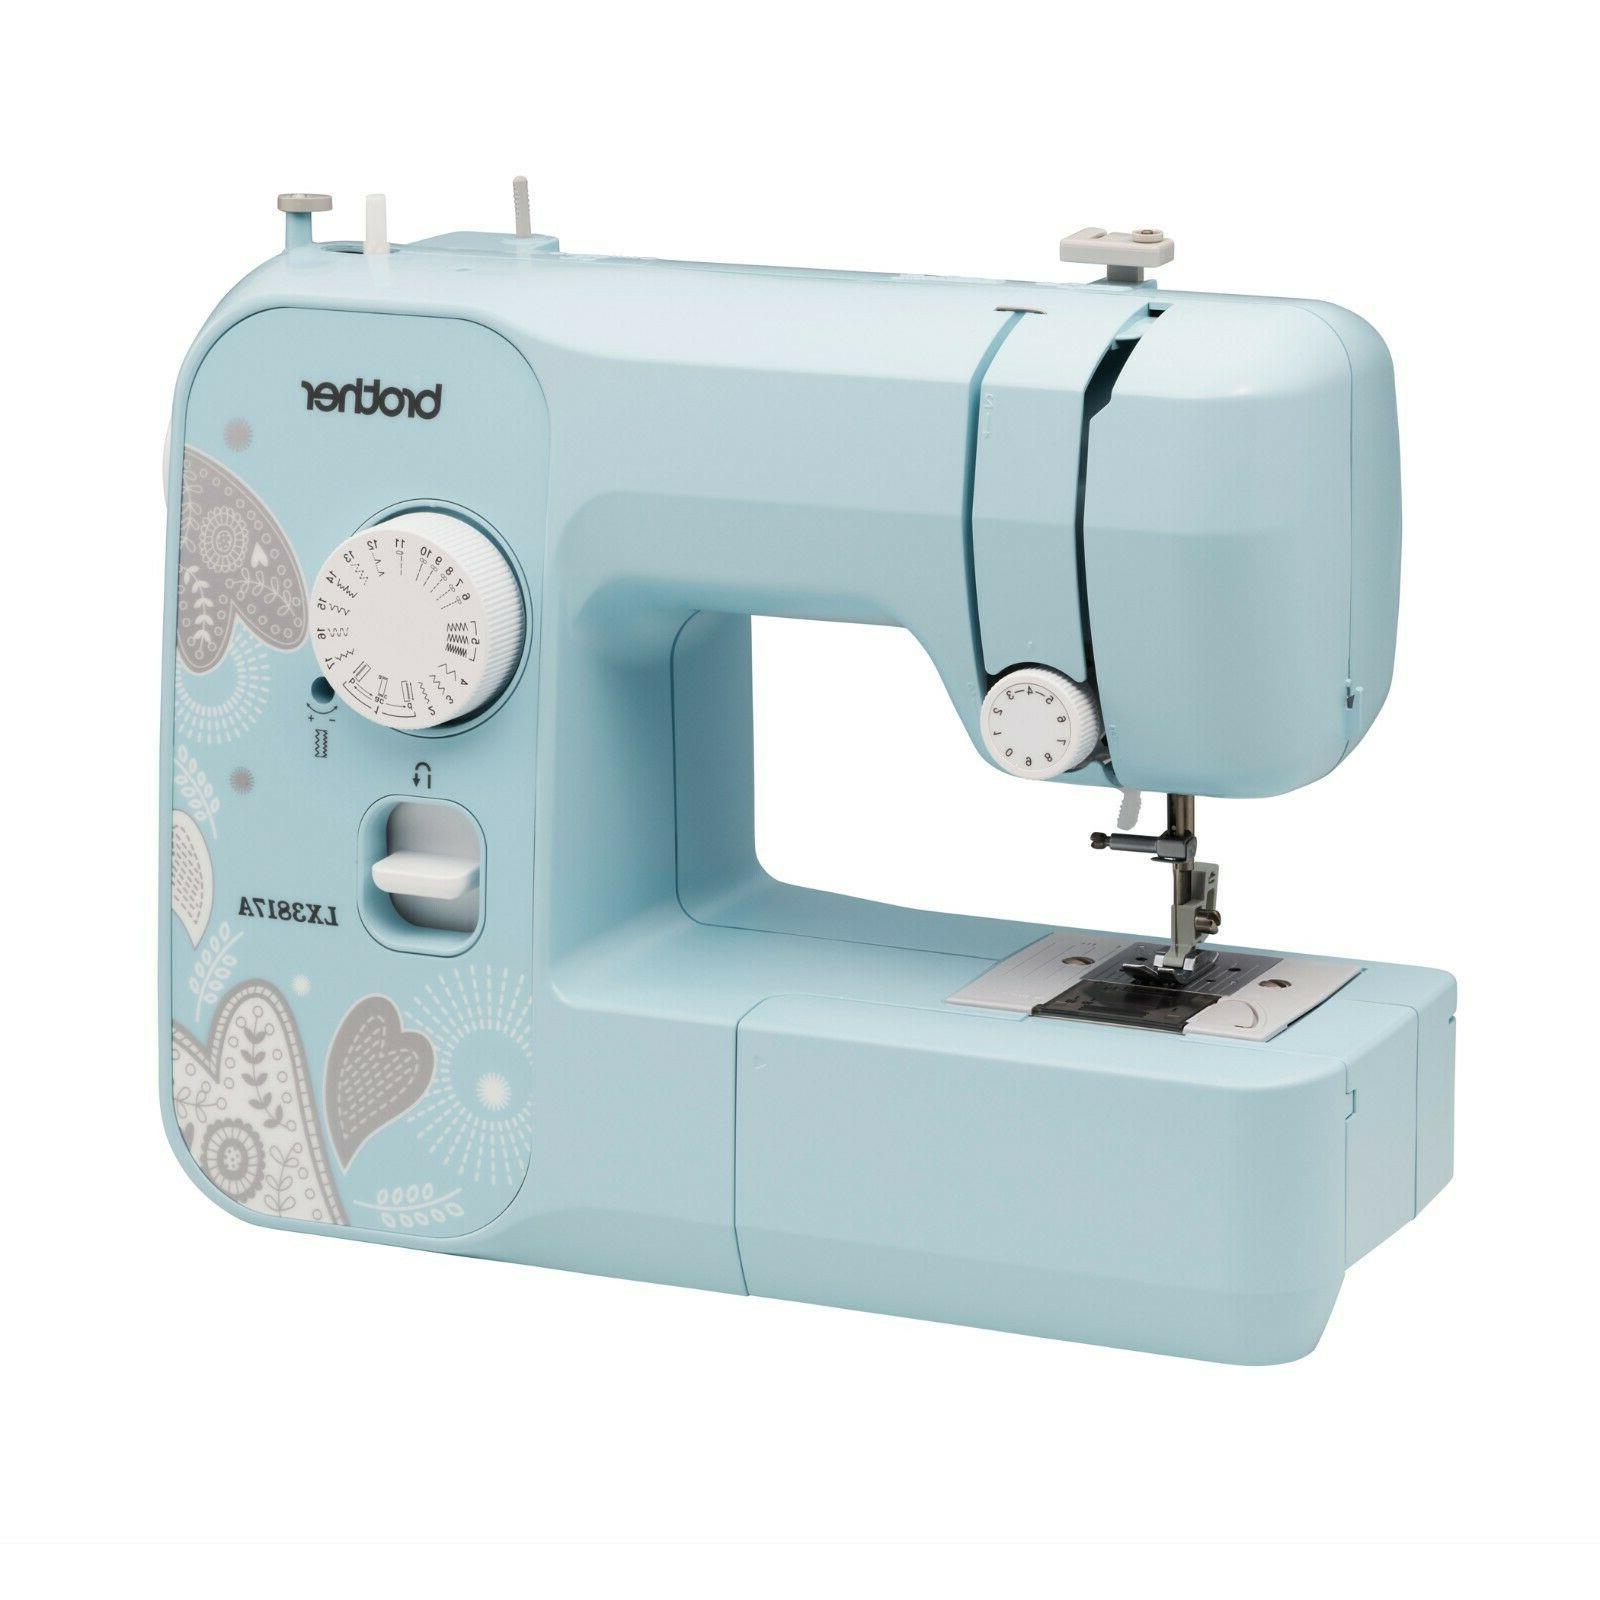 NEW LX3817A Full-size Sewing READY TO